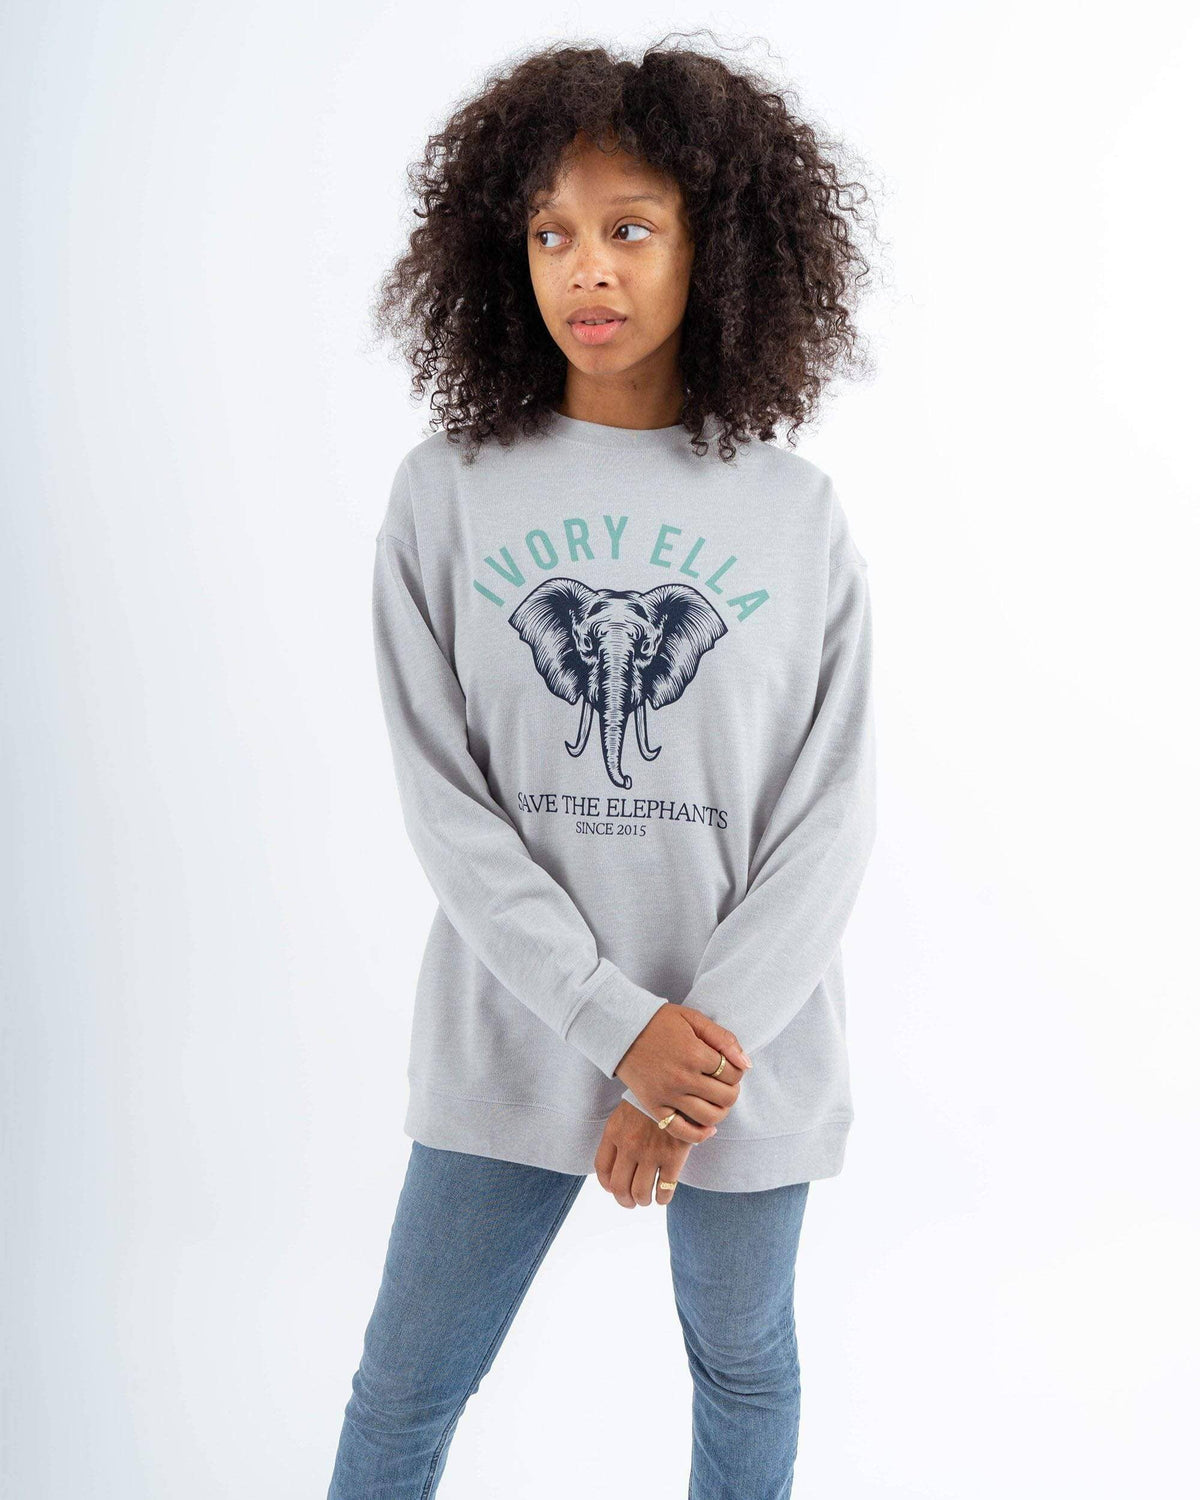 35b909b59 Ivory Ella Women s Sweatshirts XS Heather Grey Save the Elephants Crew  Sweatshirt